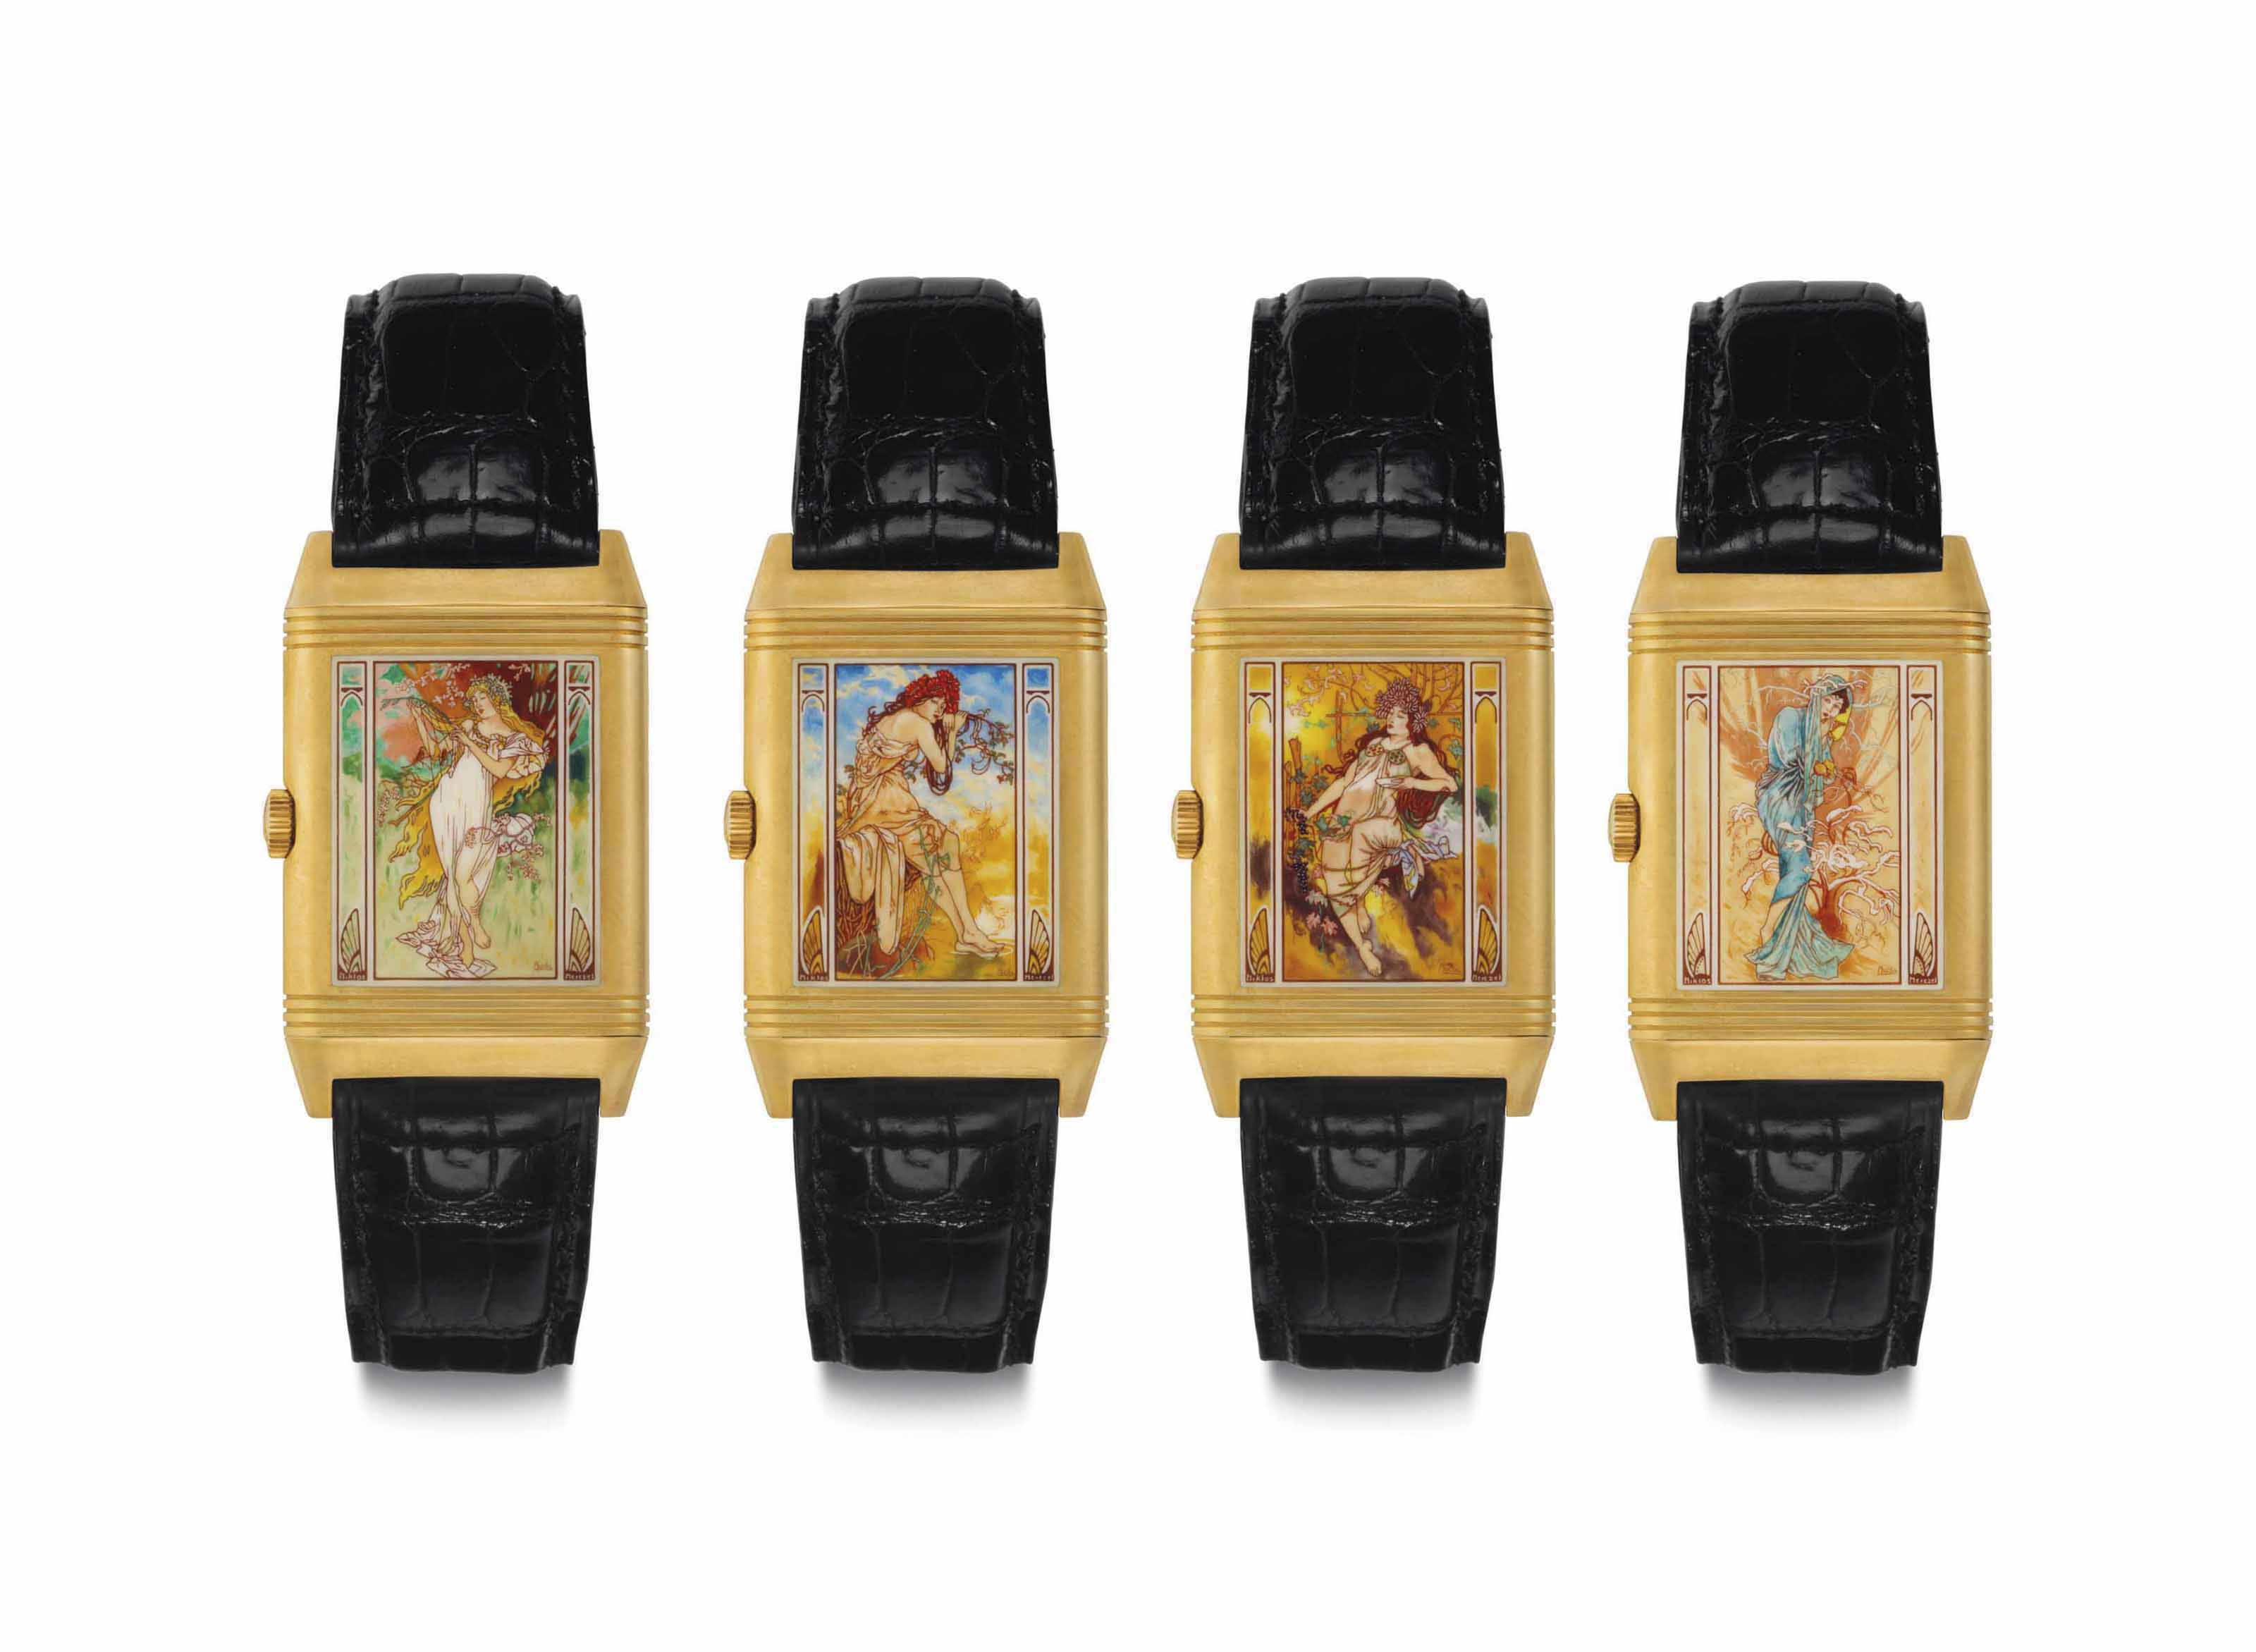 90e7b390964d A Fine and Very Rare Limited Edition 18k Gold and Enamel Set of Four  Rectangular-shaped Wristwatches Depicting the Four Seasons